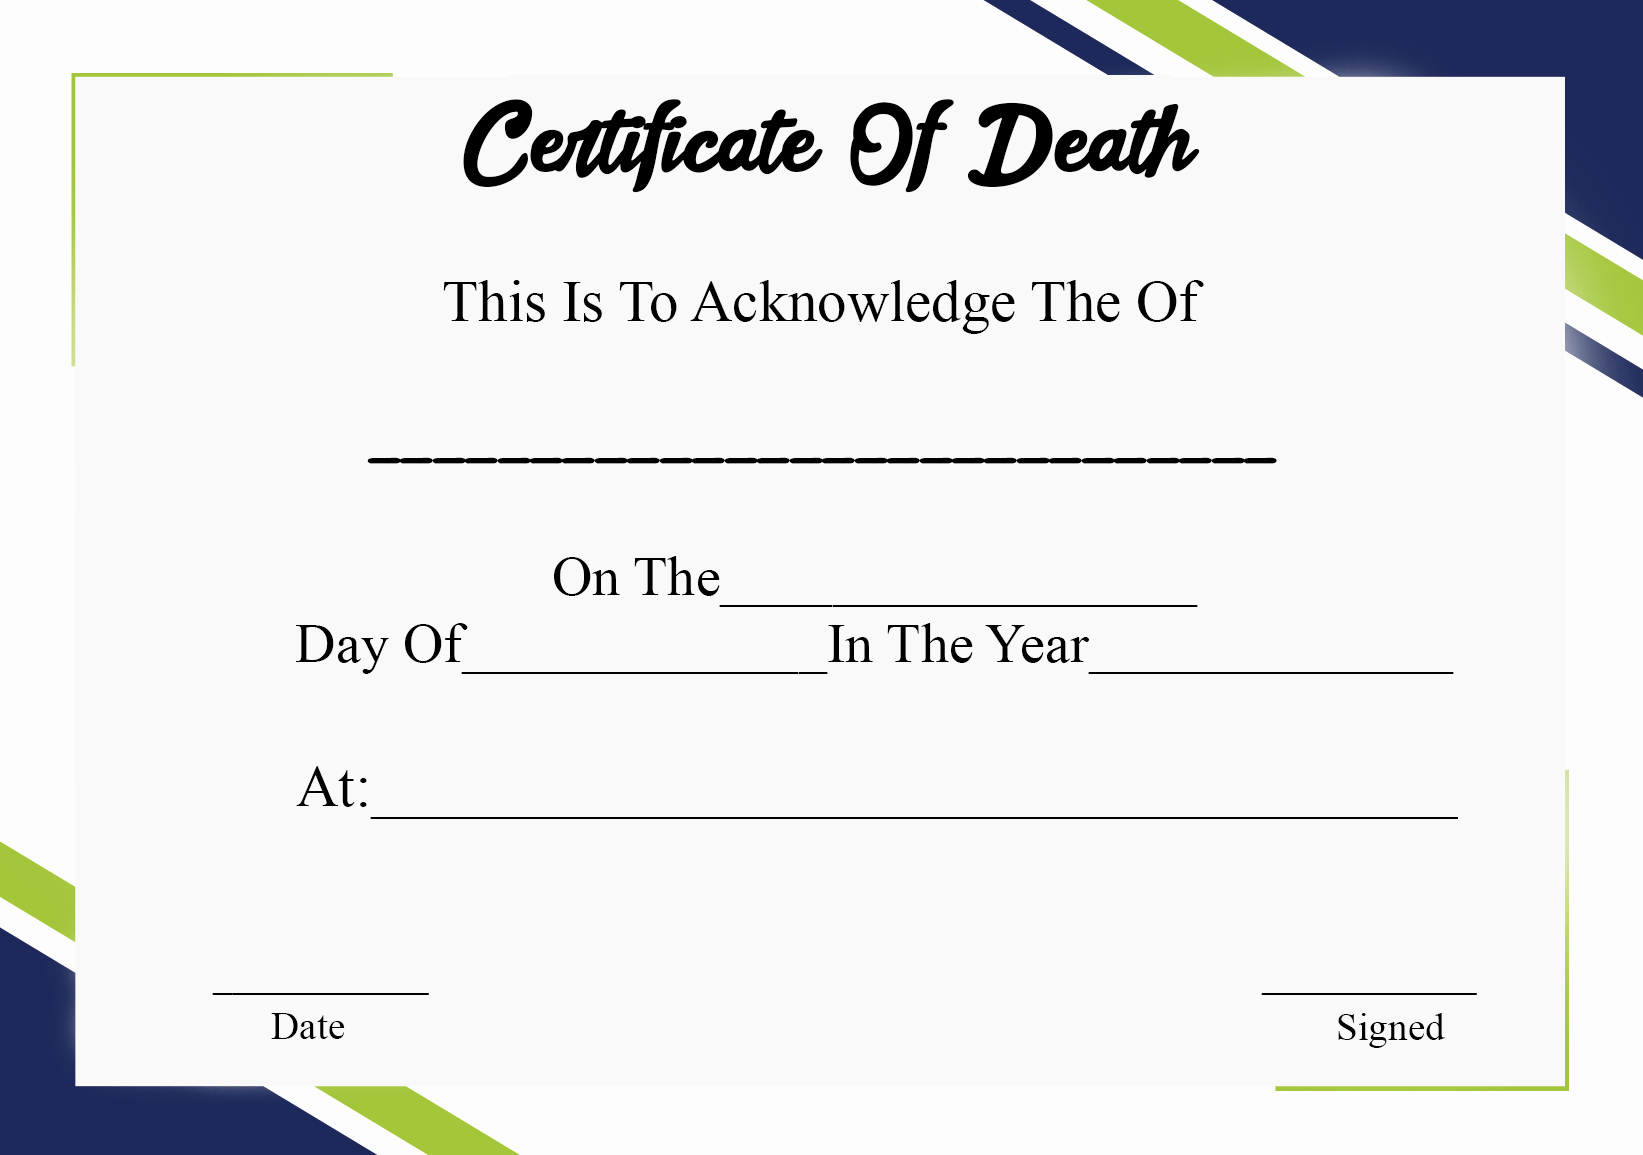 Blank Death Certificate Template Luxury 5 Printable Certificate Death Templates with Samples